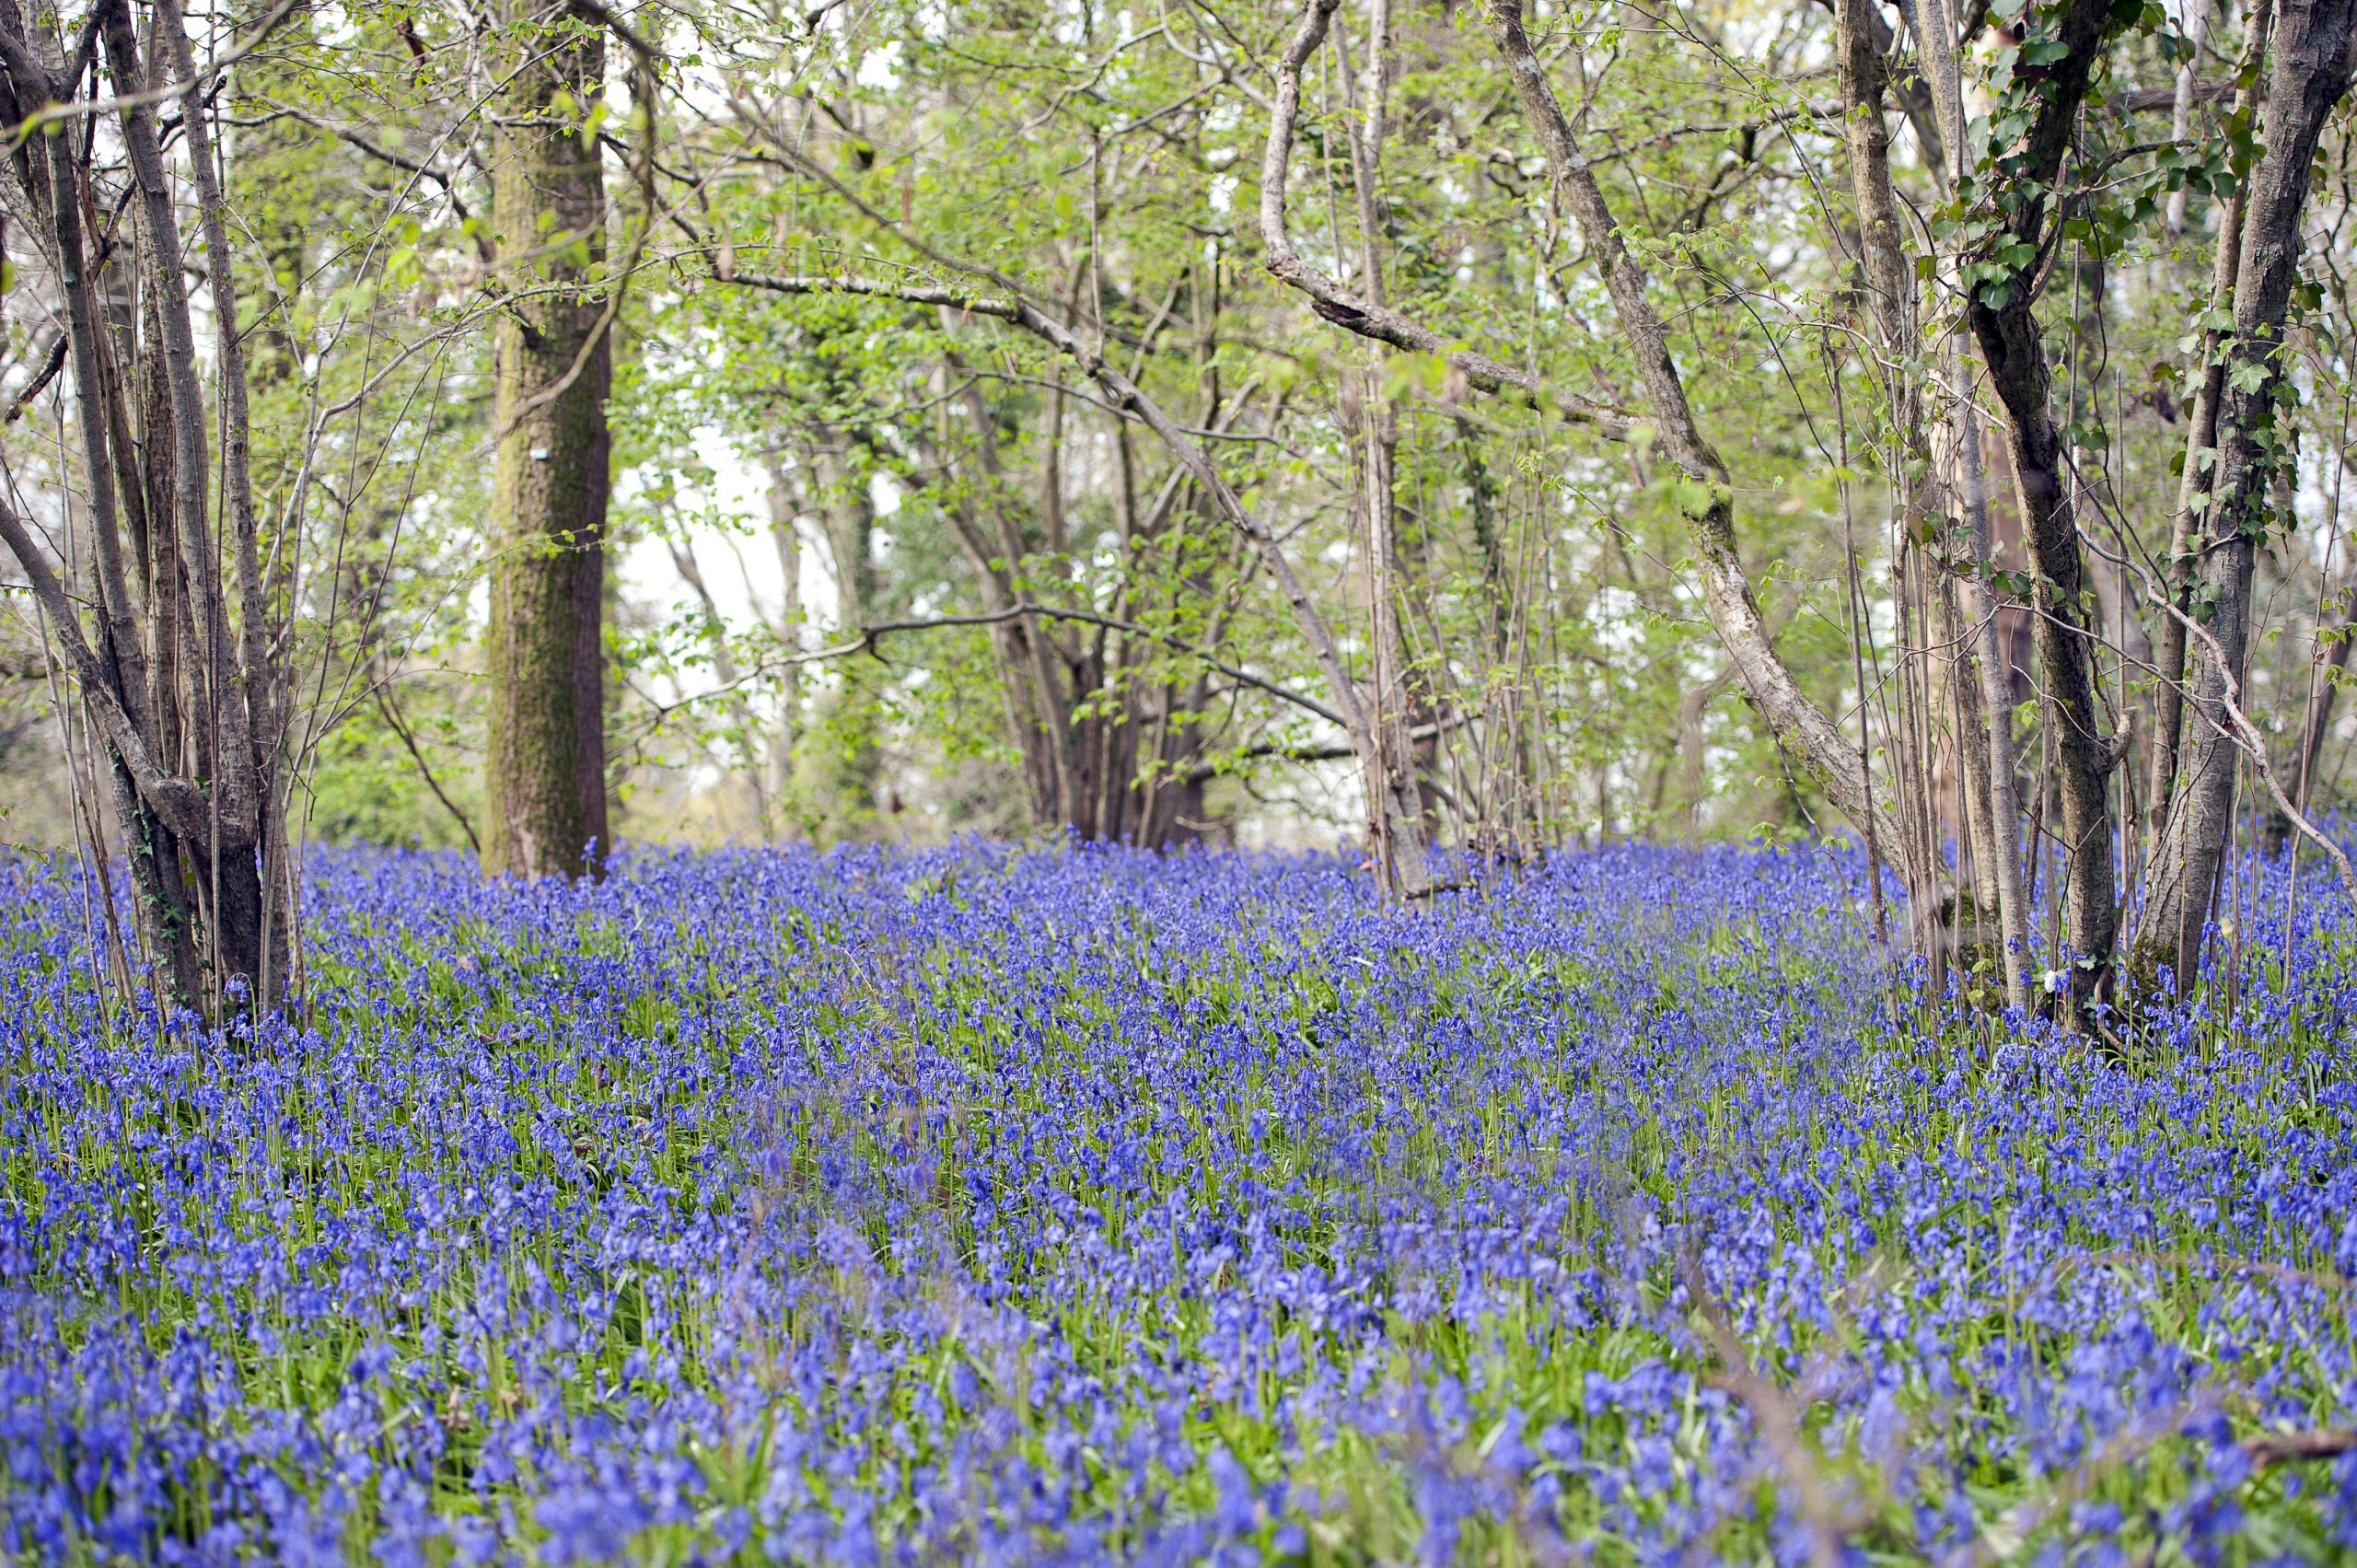 April abundance with a sea of flowering Bluebells in Pamhill, Wimborne, Dorset, England